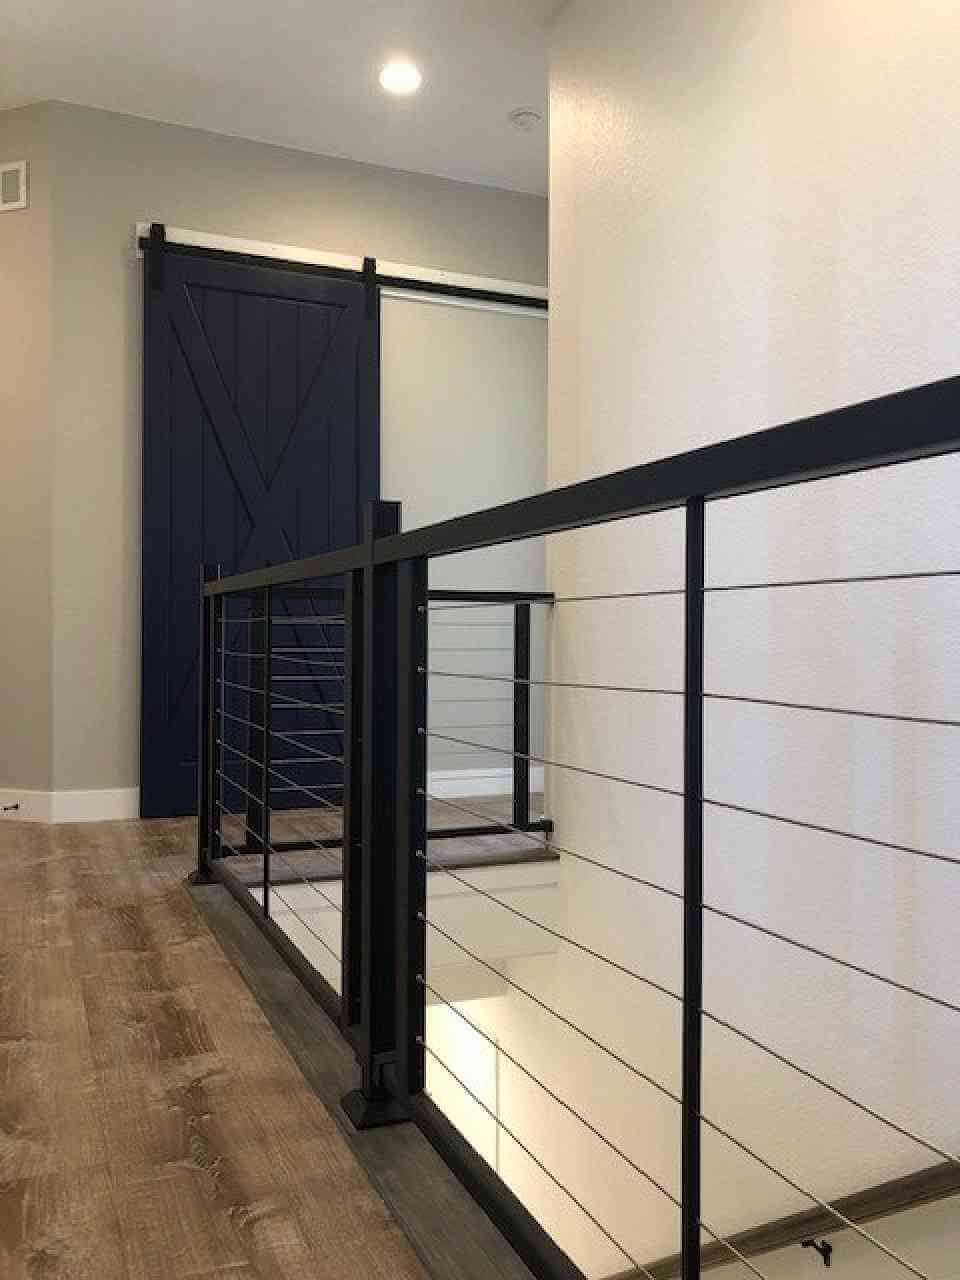 Stair Railing and Laundry Room Barn Door